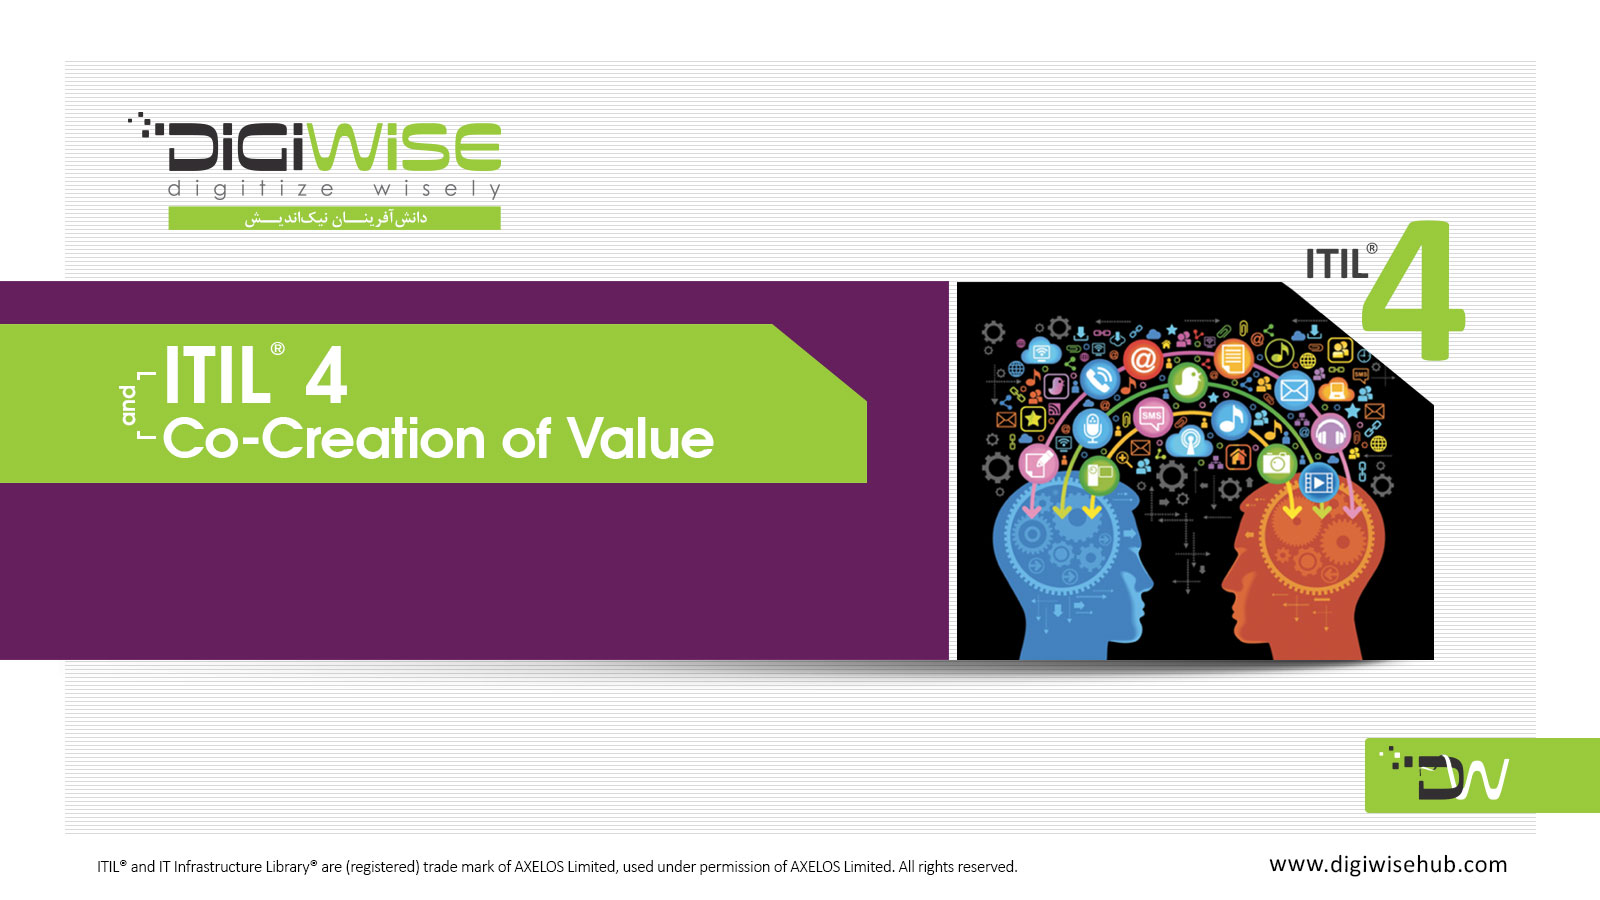 ITIL and Co-Creation of Value